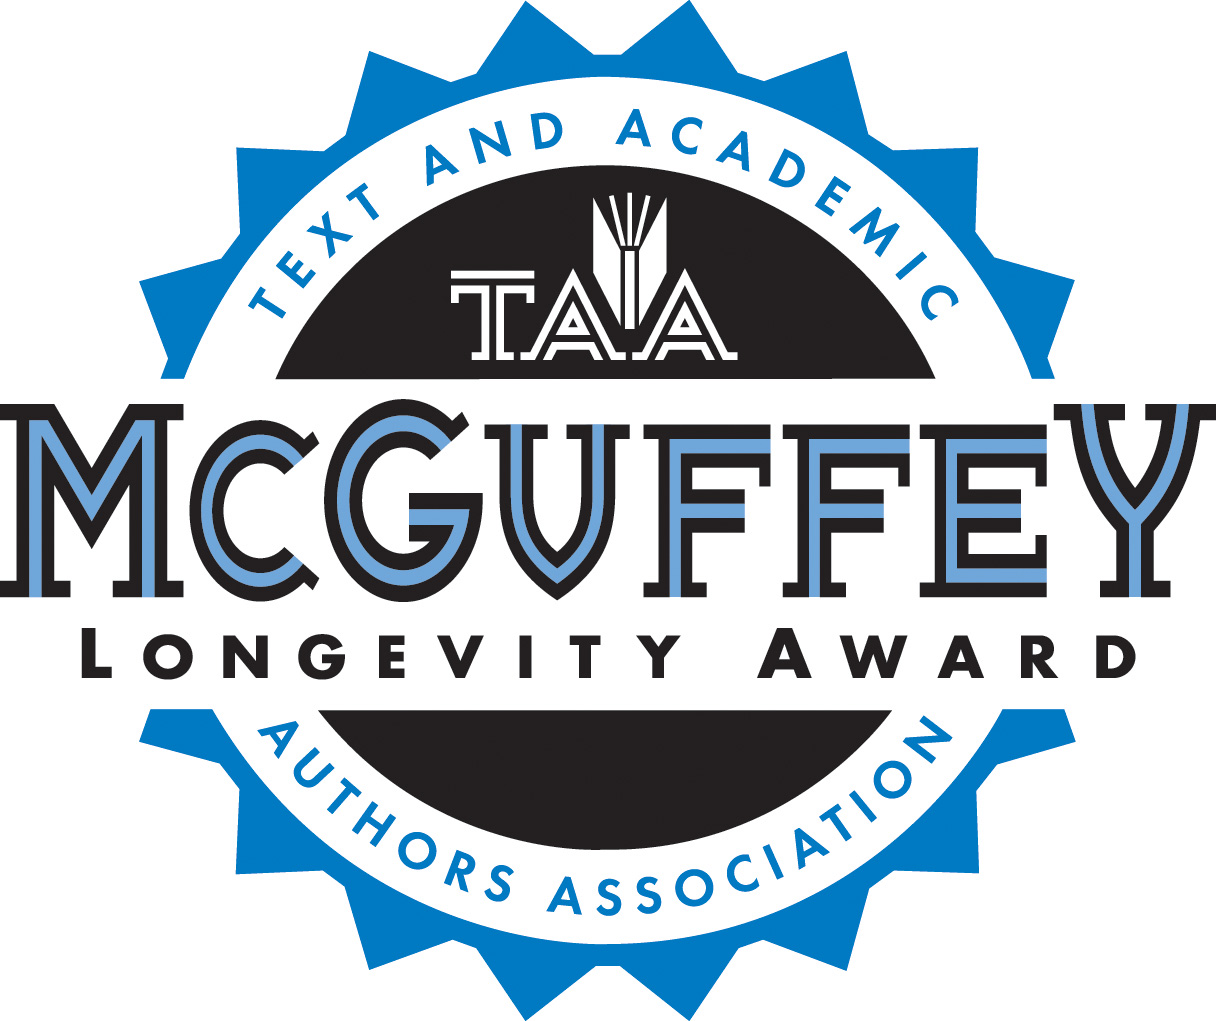 McGuffey Longevity Award